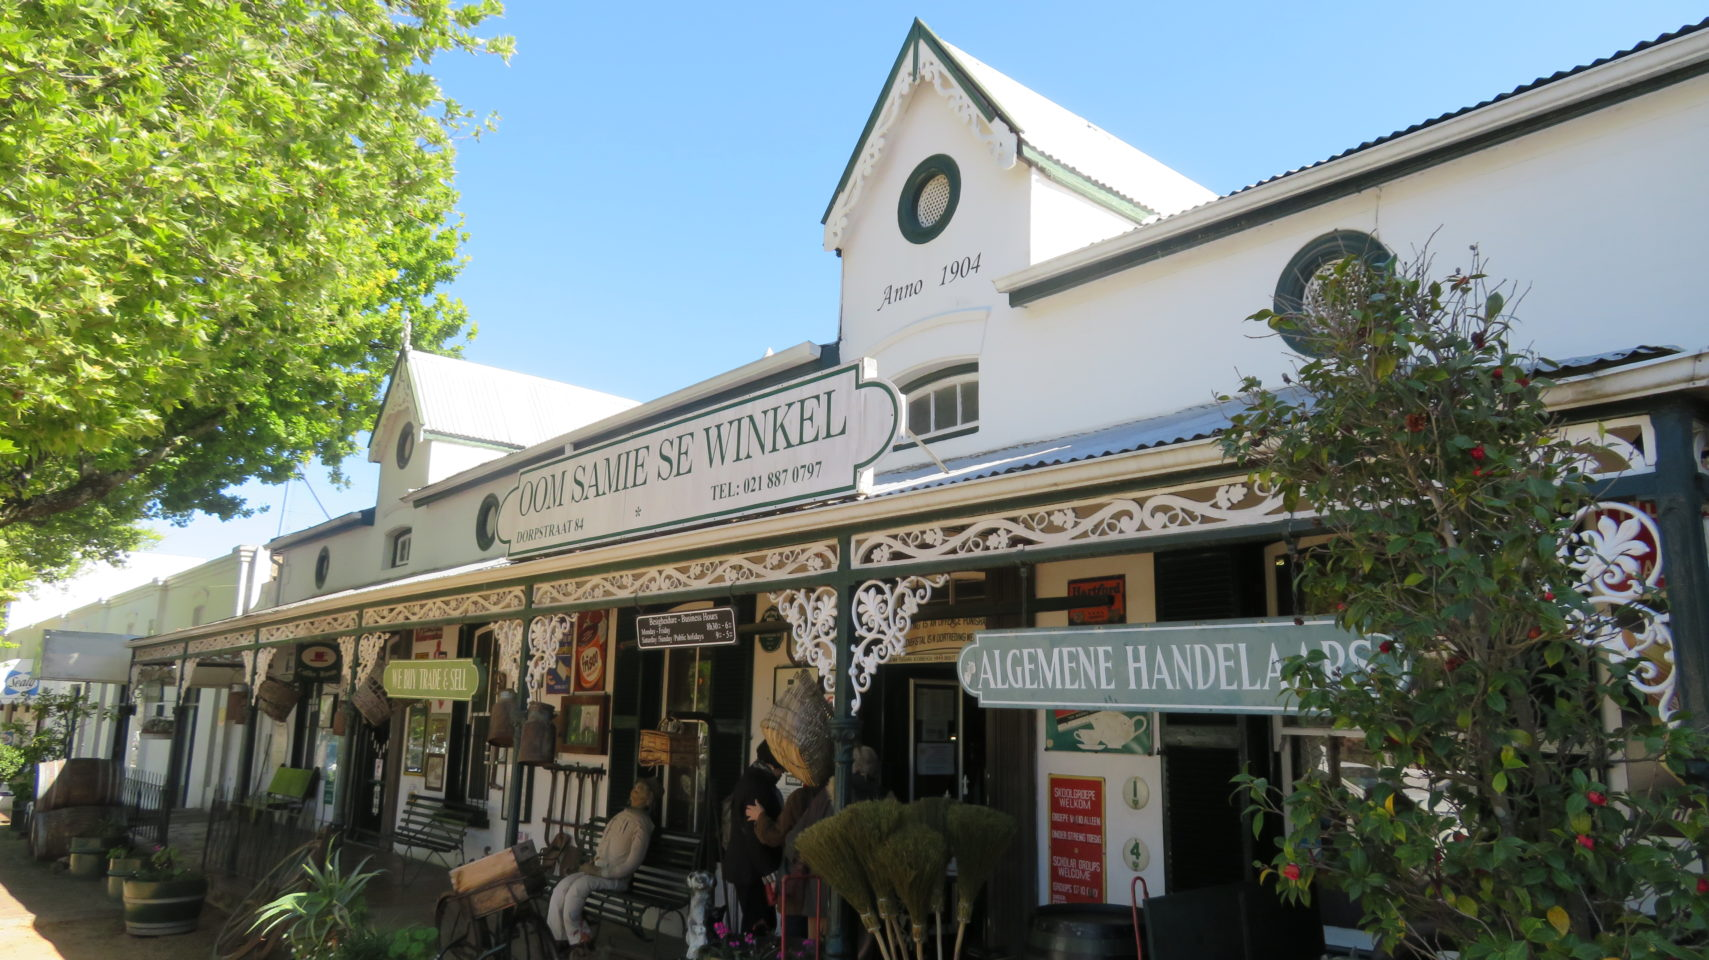 The town of Stellenbosch, South Africa